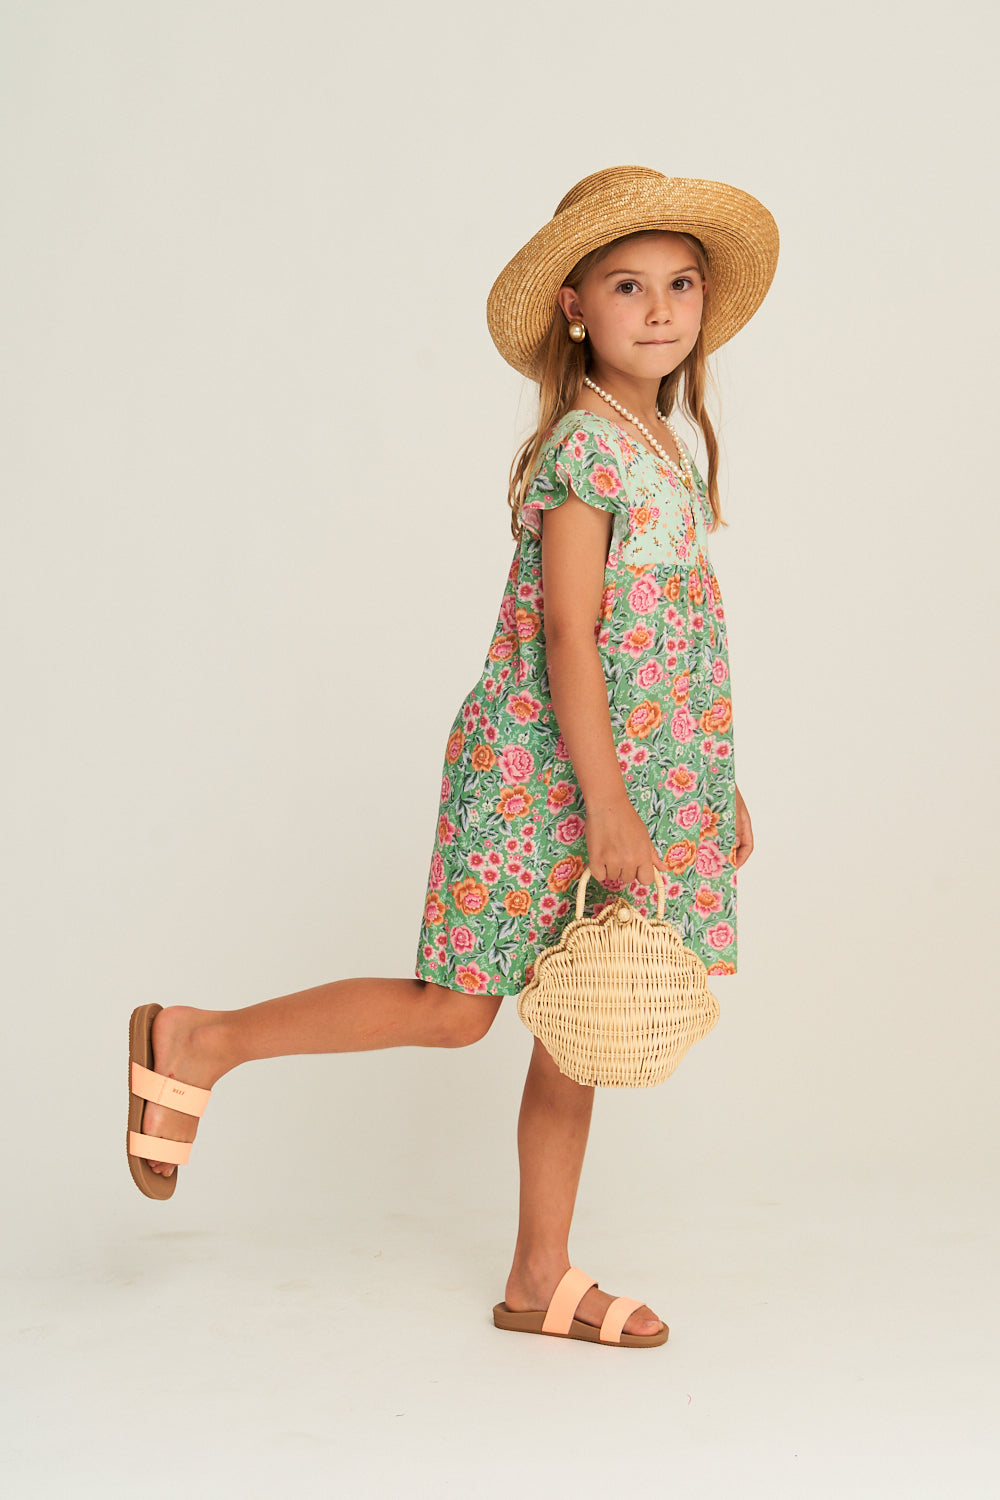 Harmony Littles Dress in Mint